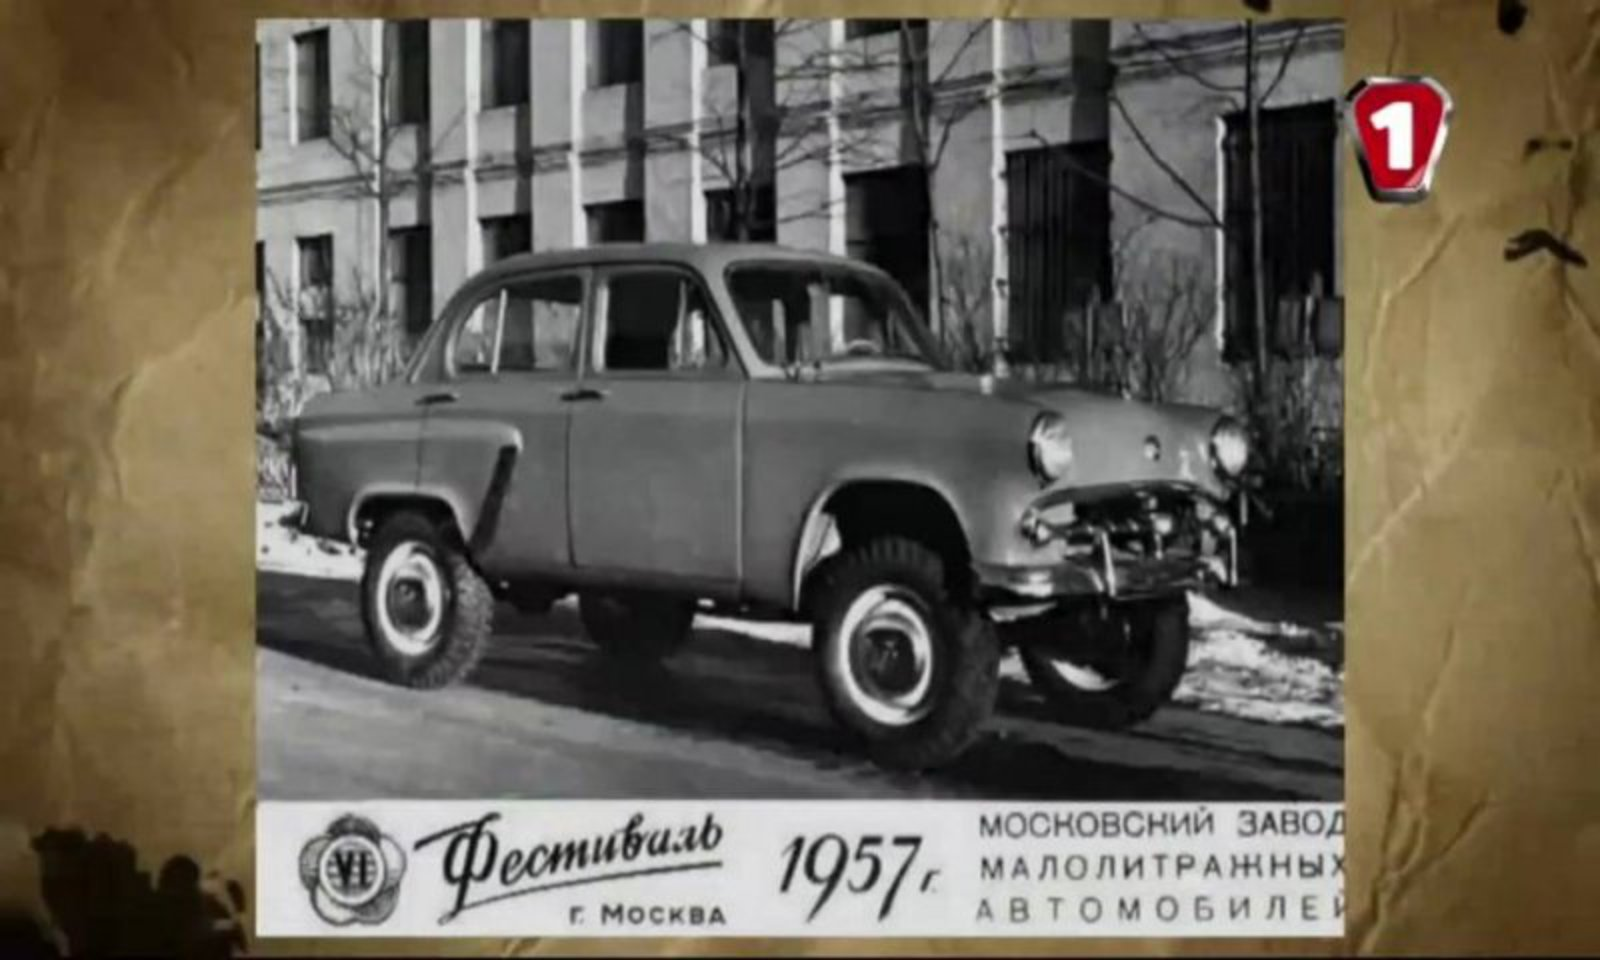 Moskvitch 412 combi Photo Gallery: Photo #05 out of 10, Image Size ...